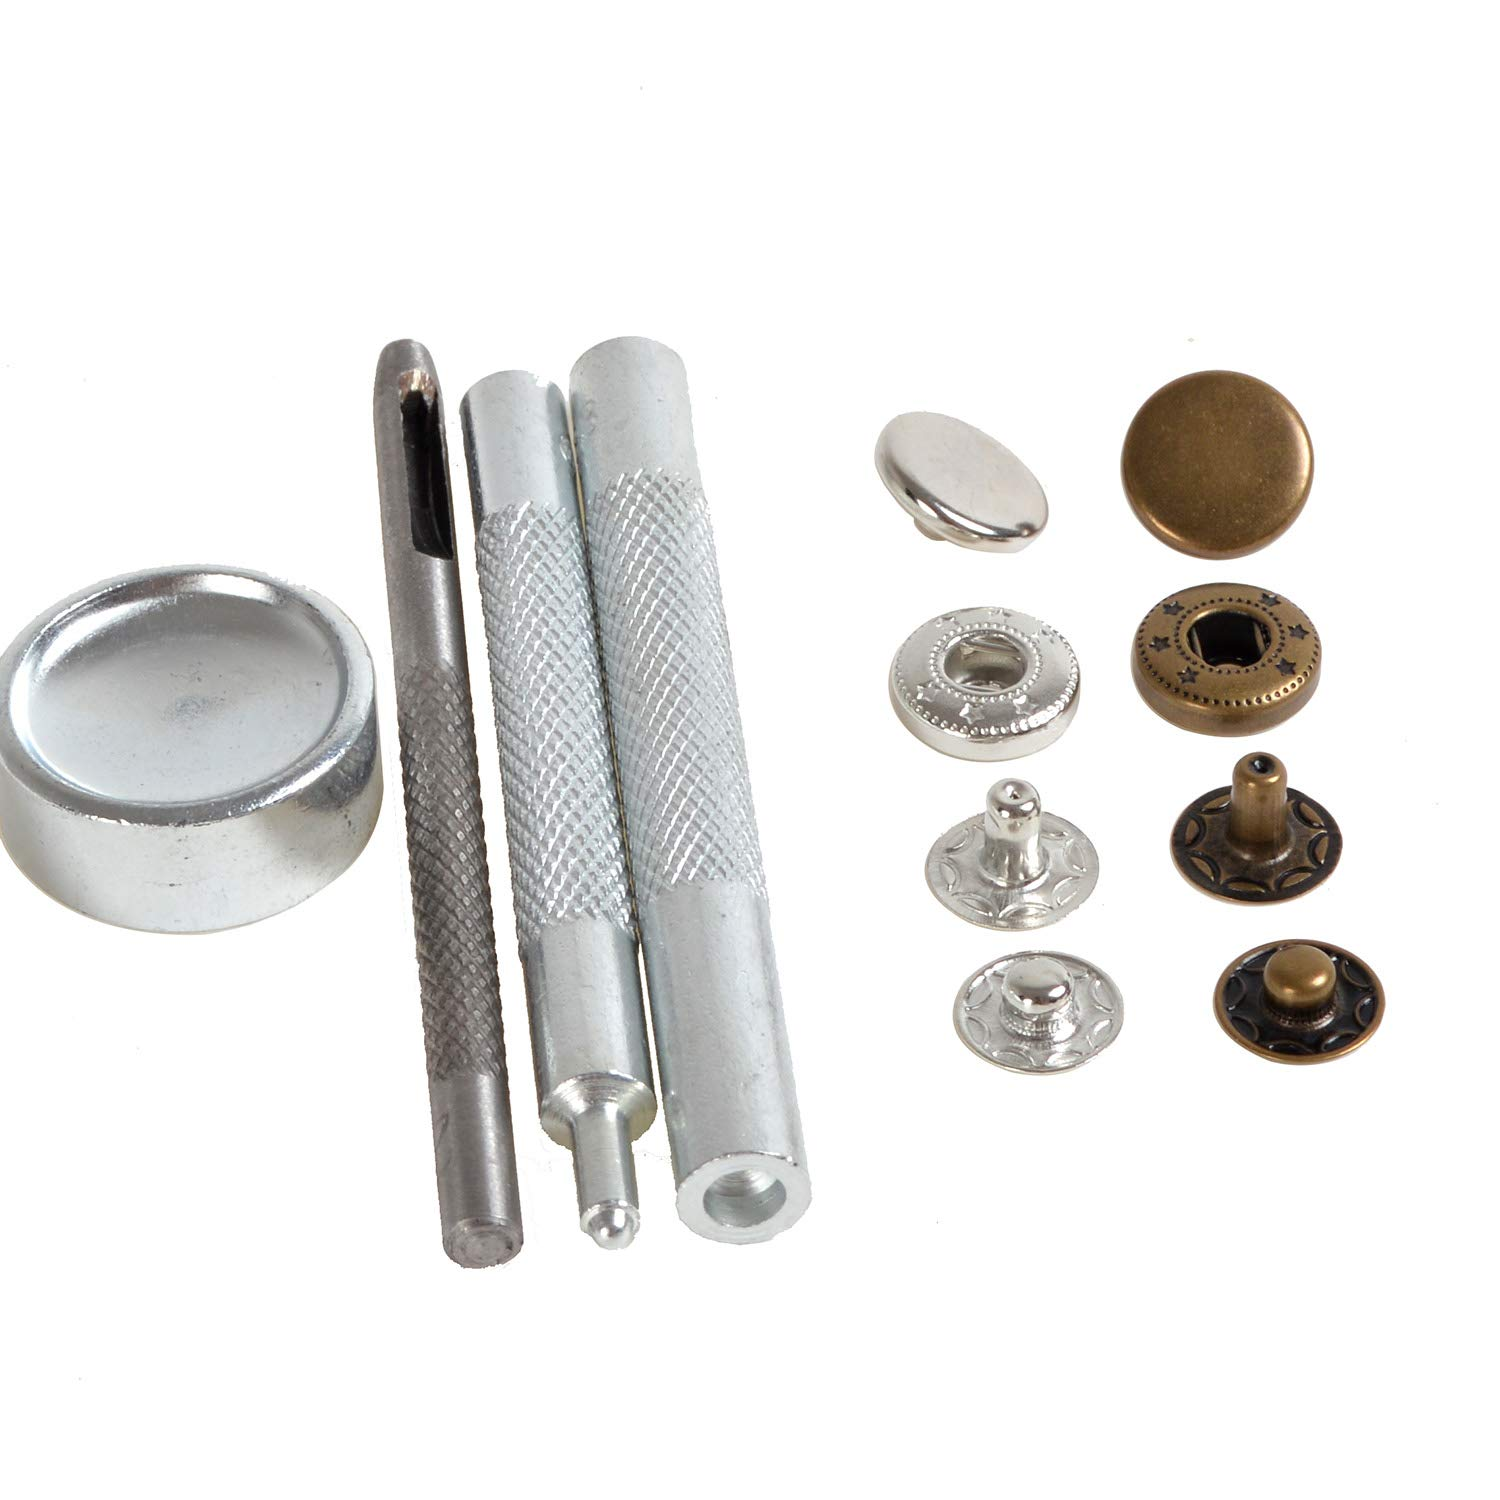 30 Completed Sets 12.5mm Silver & Antique Brass Snap Fasteners Poppers Sewing Clothing Jacket Jean Bag Shoes Buttons Studs Kit with Fixing Tool ifsecond